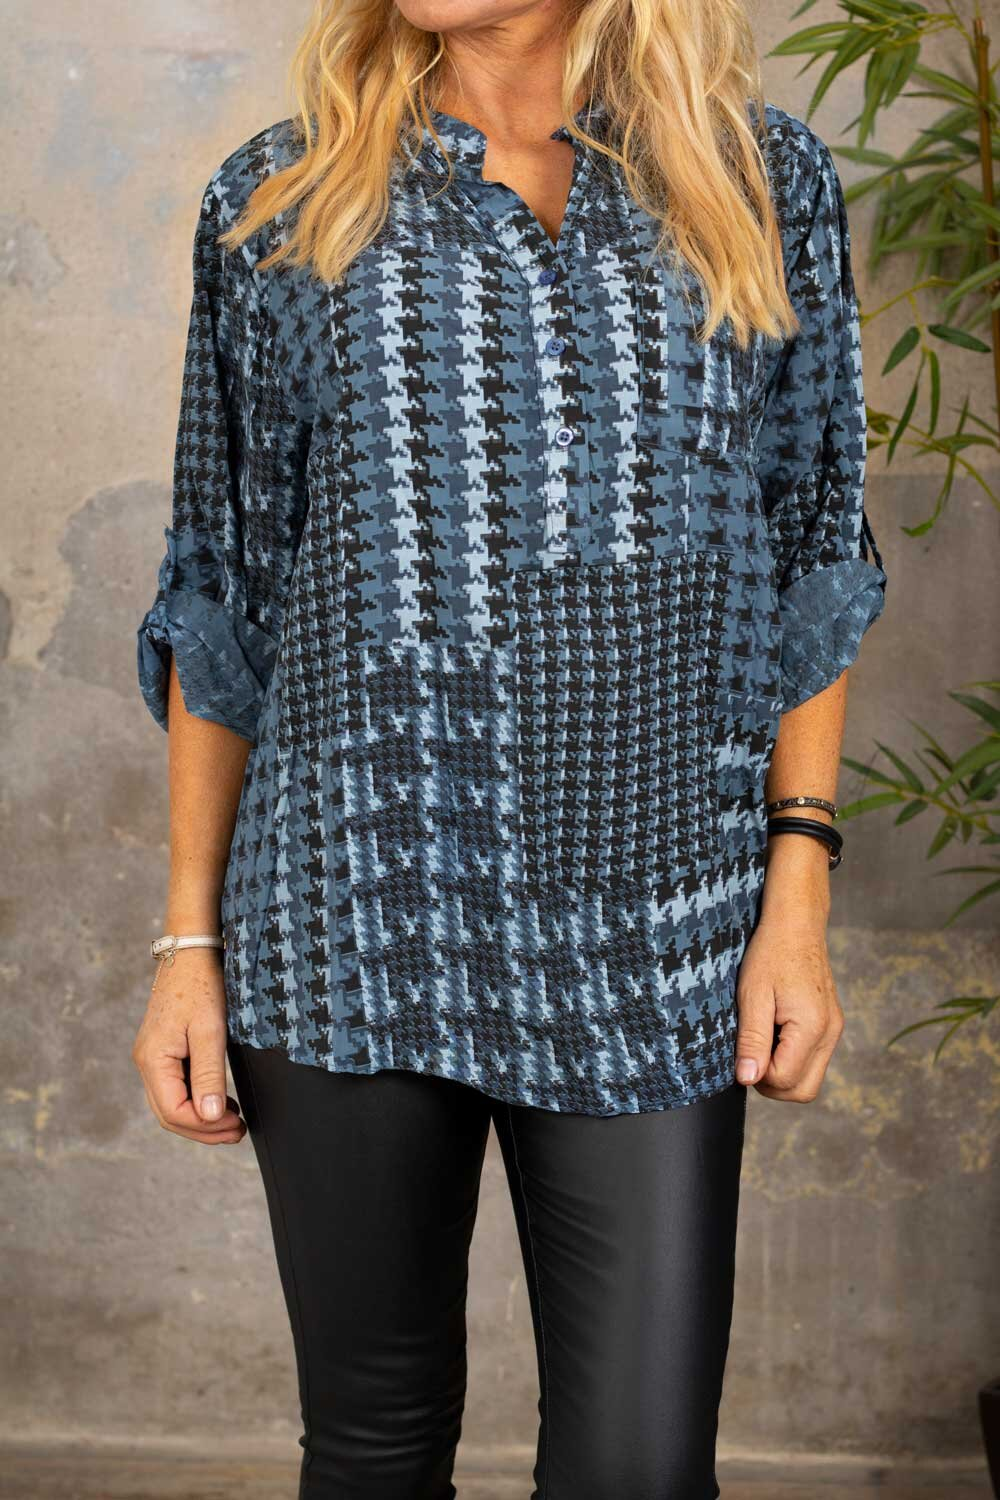 Cora Blouse - Houndstooth - Blue